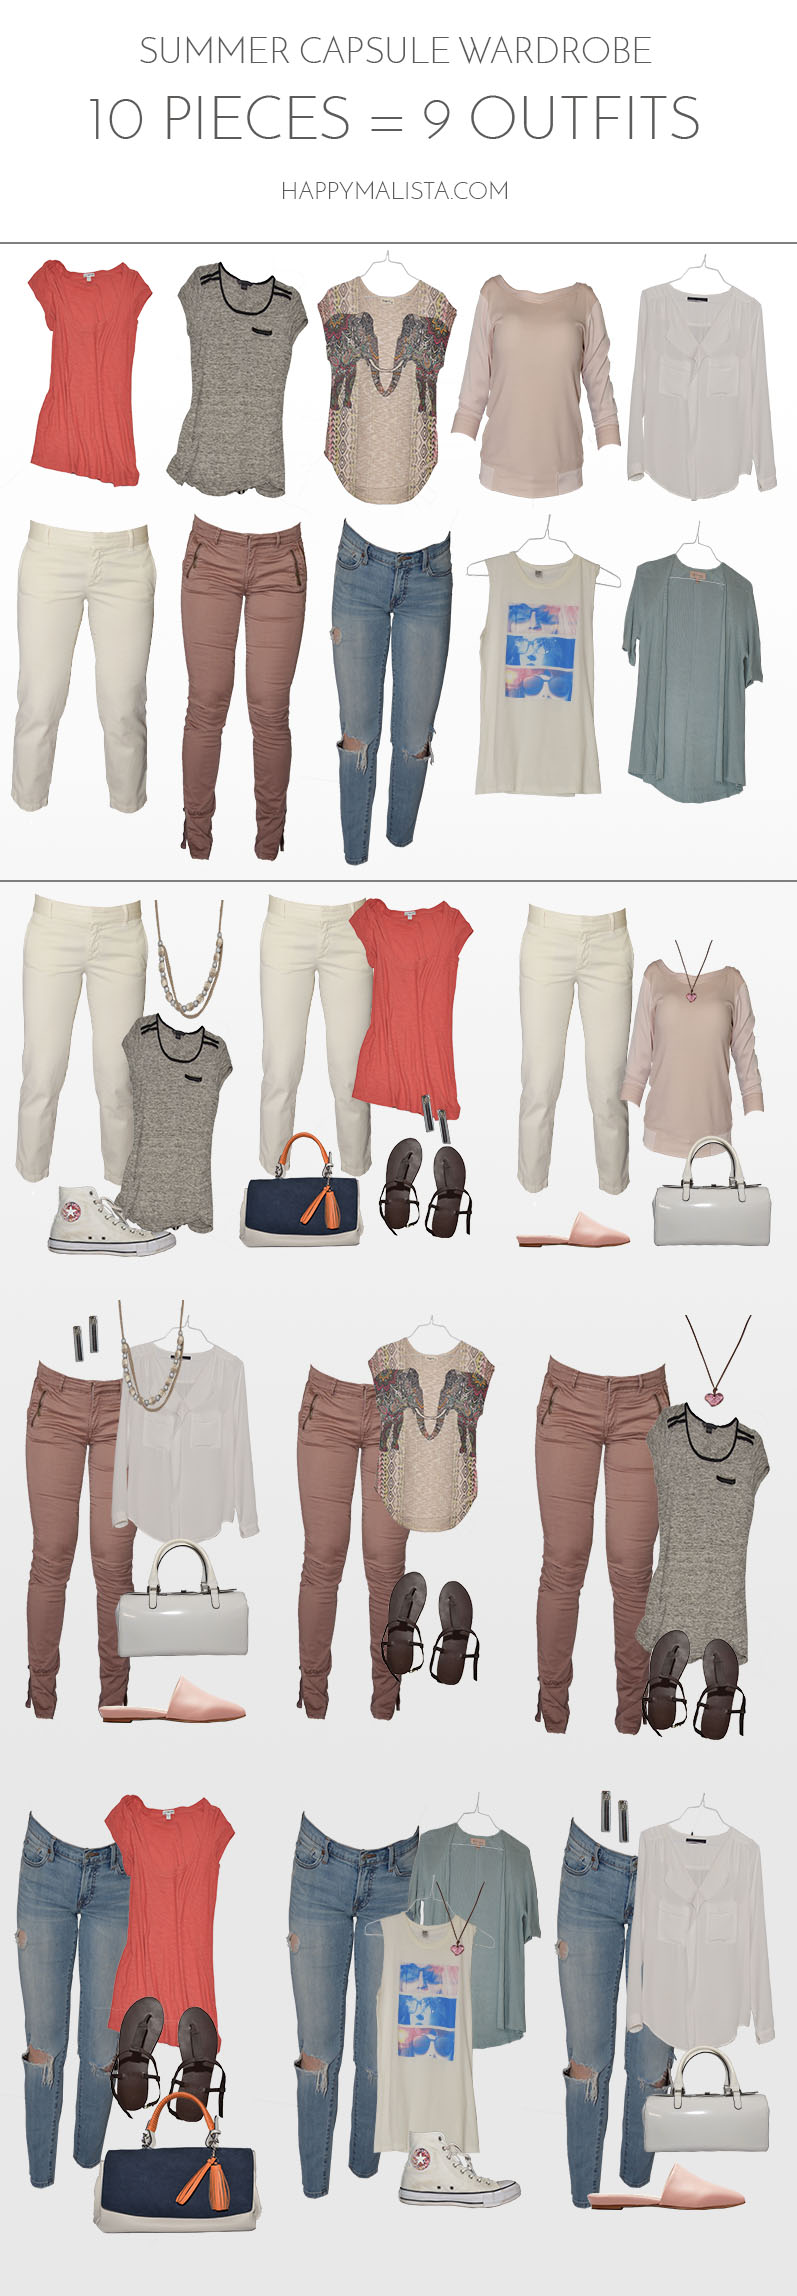 summer wardrobe capsule - 10 pieces - 9 outfits